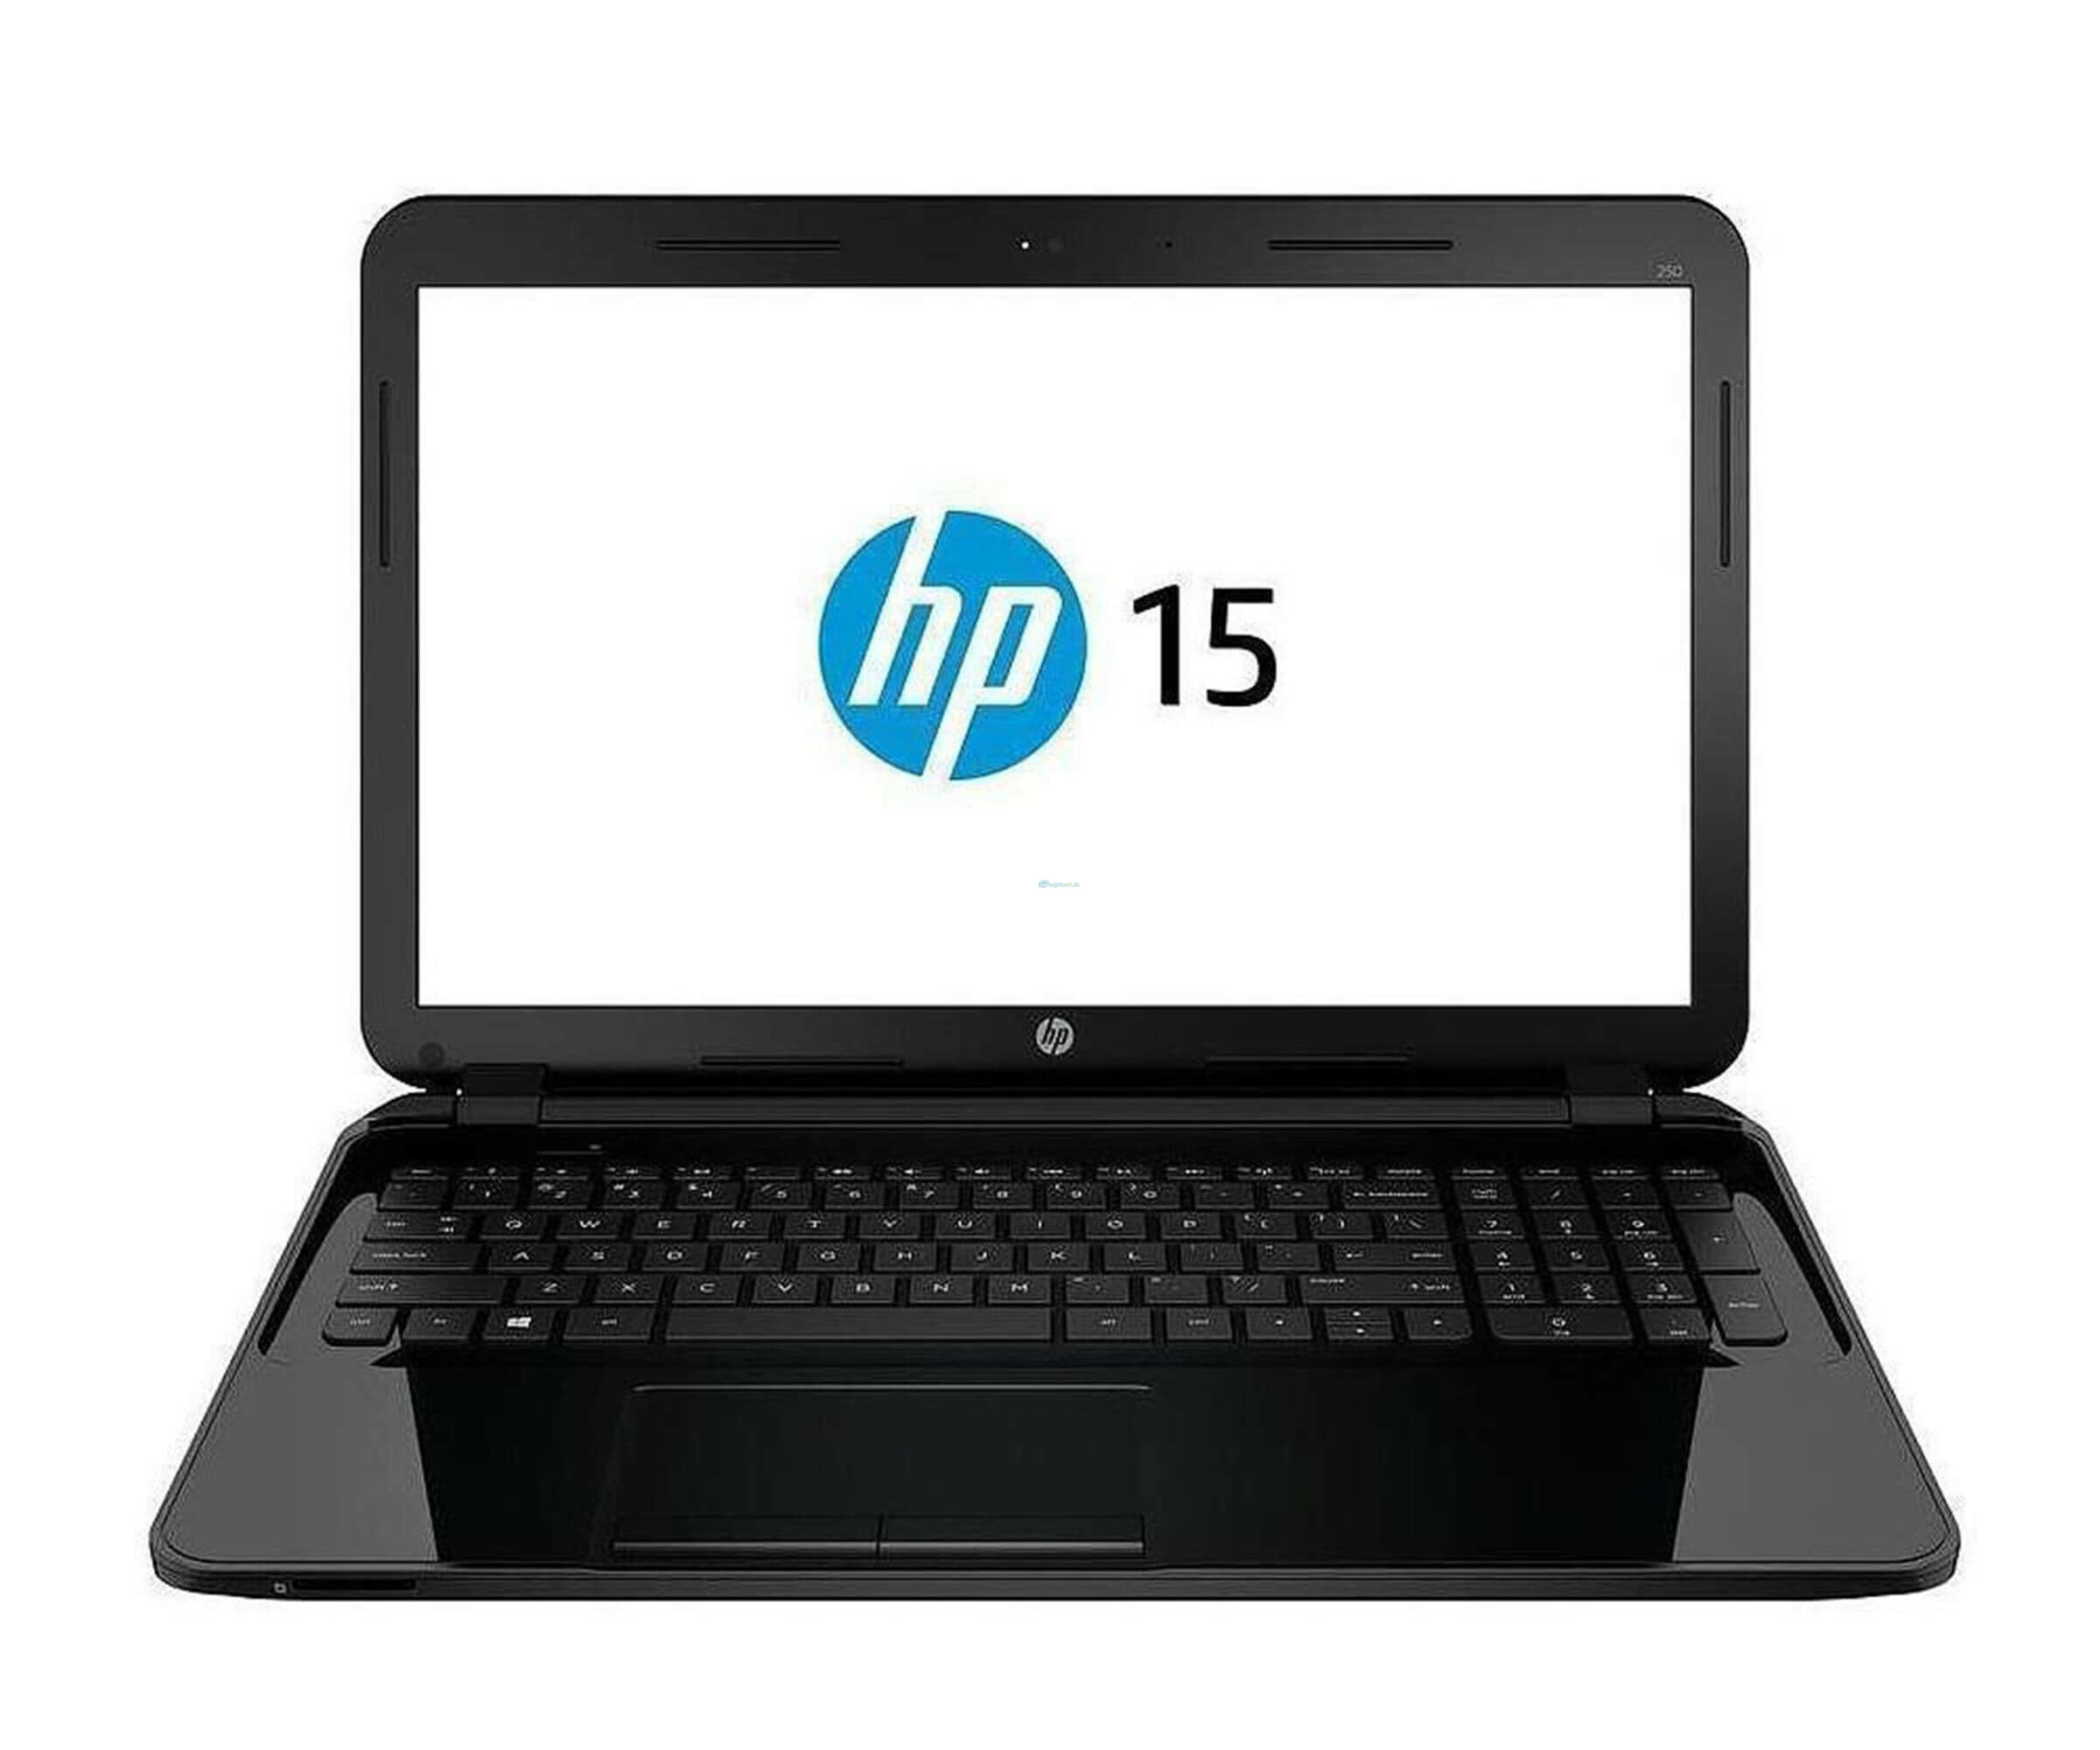 Notebook HP Pavilion 15-D002SL - Intel Core i3 3110M 2.40 Ghz - 4 GB Ram - 500 GB HDD - DVDRW - Windows 8 - Tastatur: Italienisch